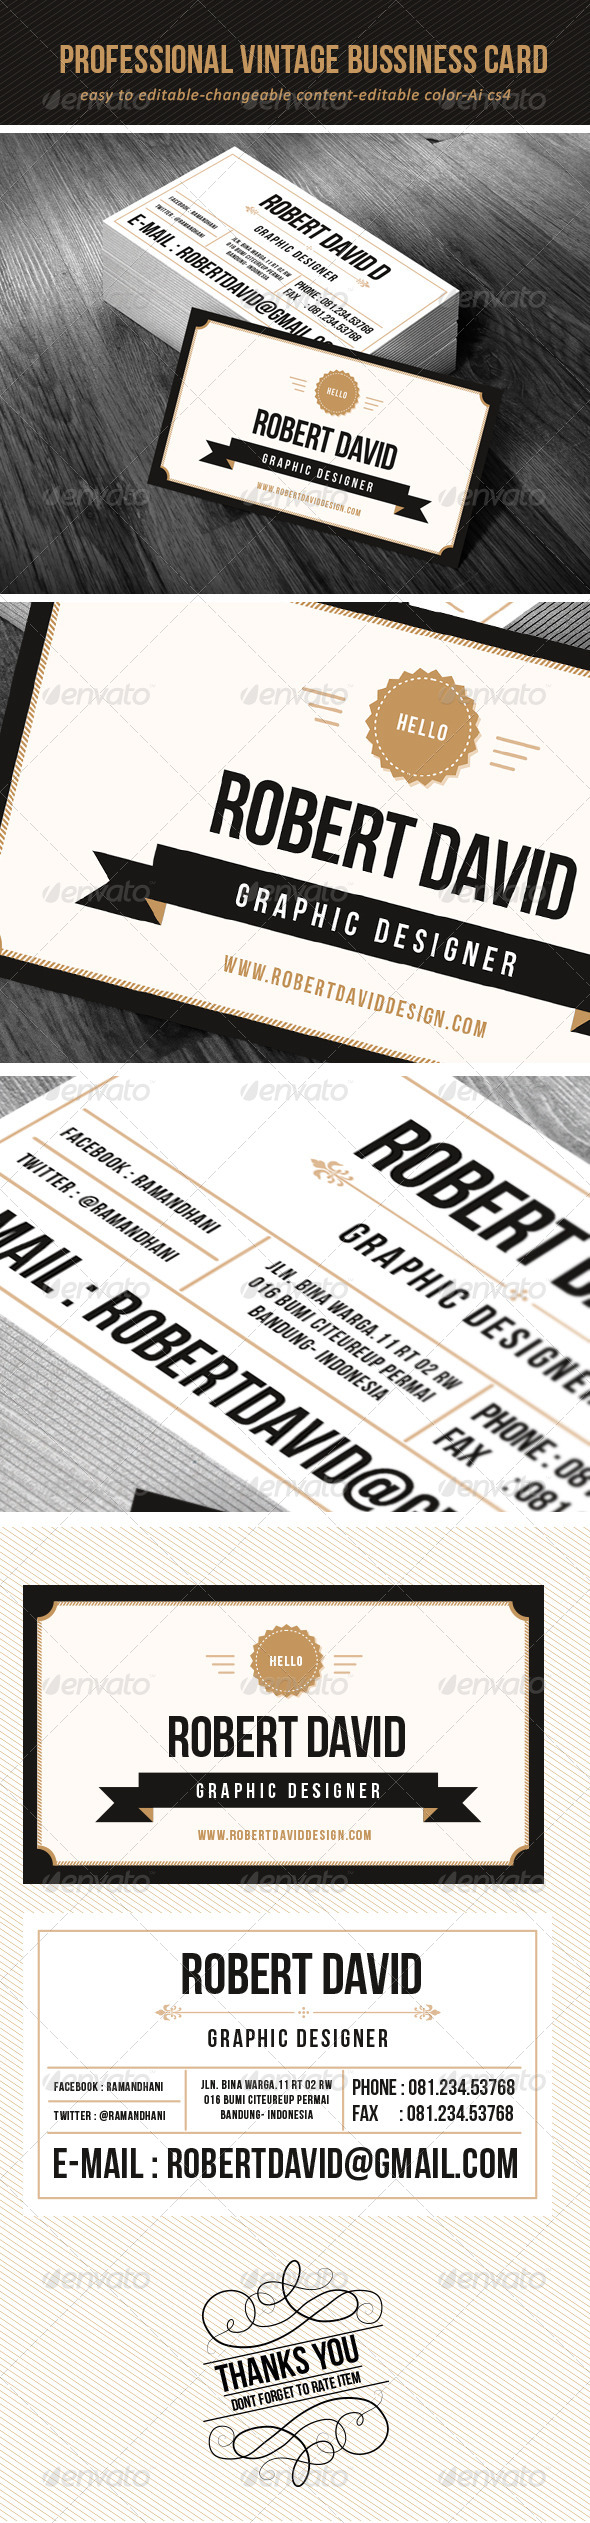 Professional Vintage Bussiness Card - Retro/Vintage Business Cards